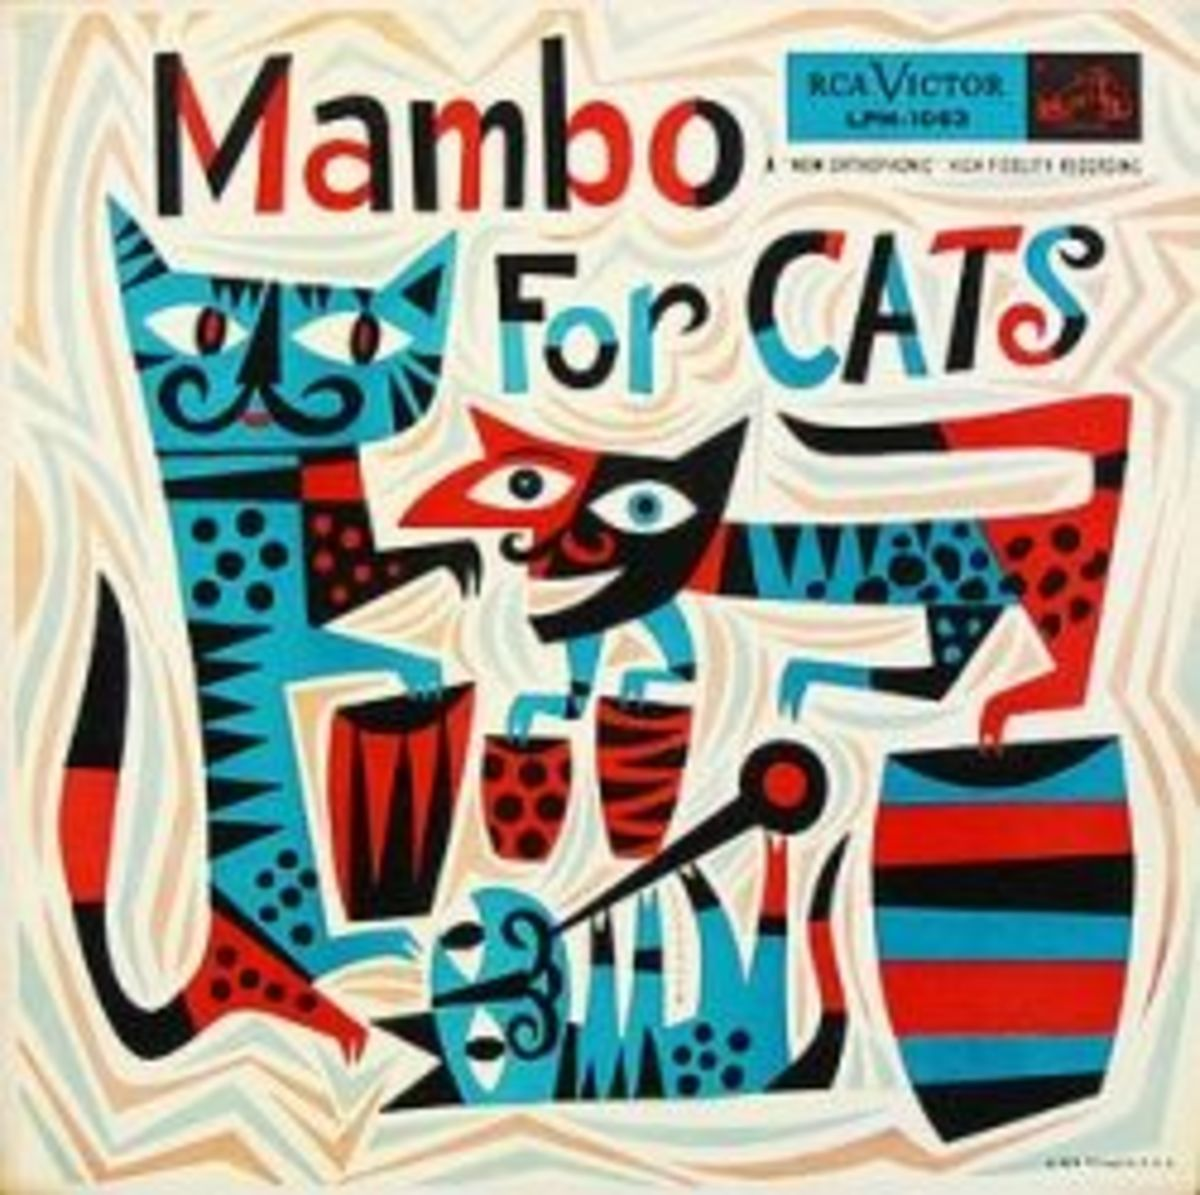 "Various Artists ""Mambo for Cats"" RCA Victor Records 1063 LP Vinyl Record (1955) Album Cover Art & Design by Jim Flora"